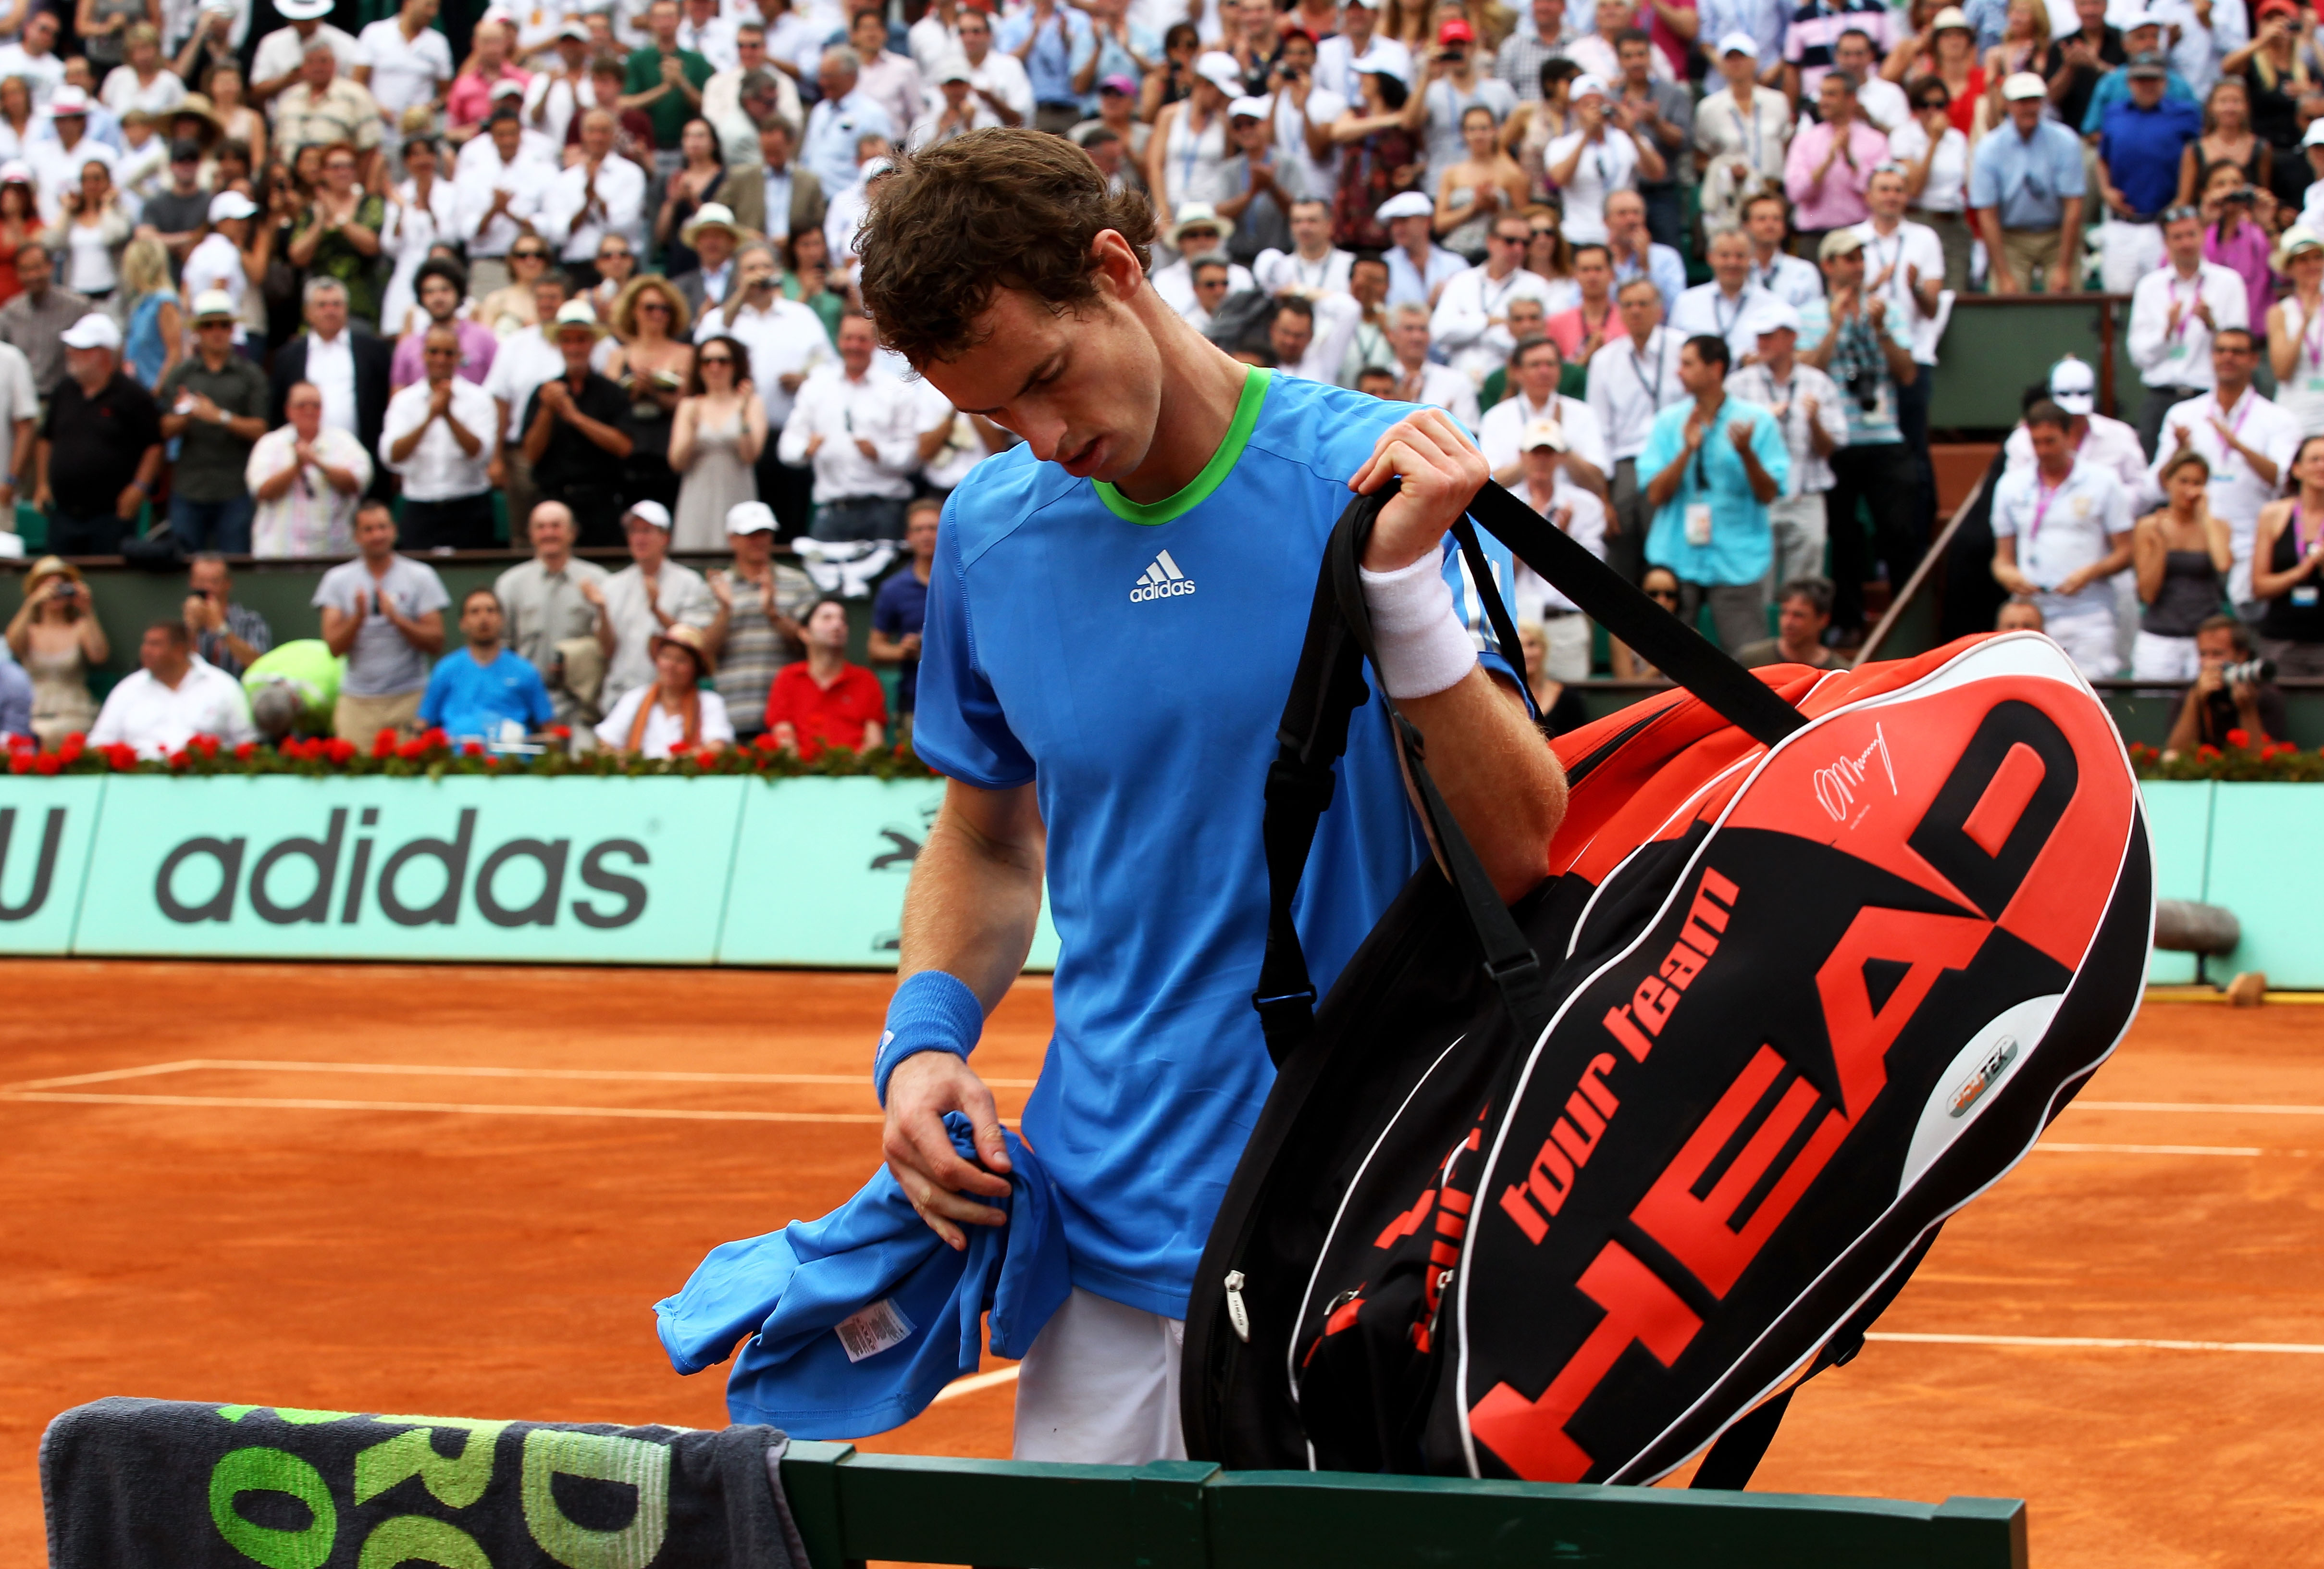 PARIS, FRANCE - JUNE 03:  Andy Murray of Great Britain leaves the court following his defeat during the men's singles semi final match between Rafael Nadal of Spain and Andy Murray of Great Britain on day thirteen of the French Open at Roland Garros on Ju